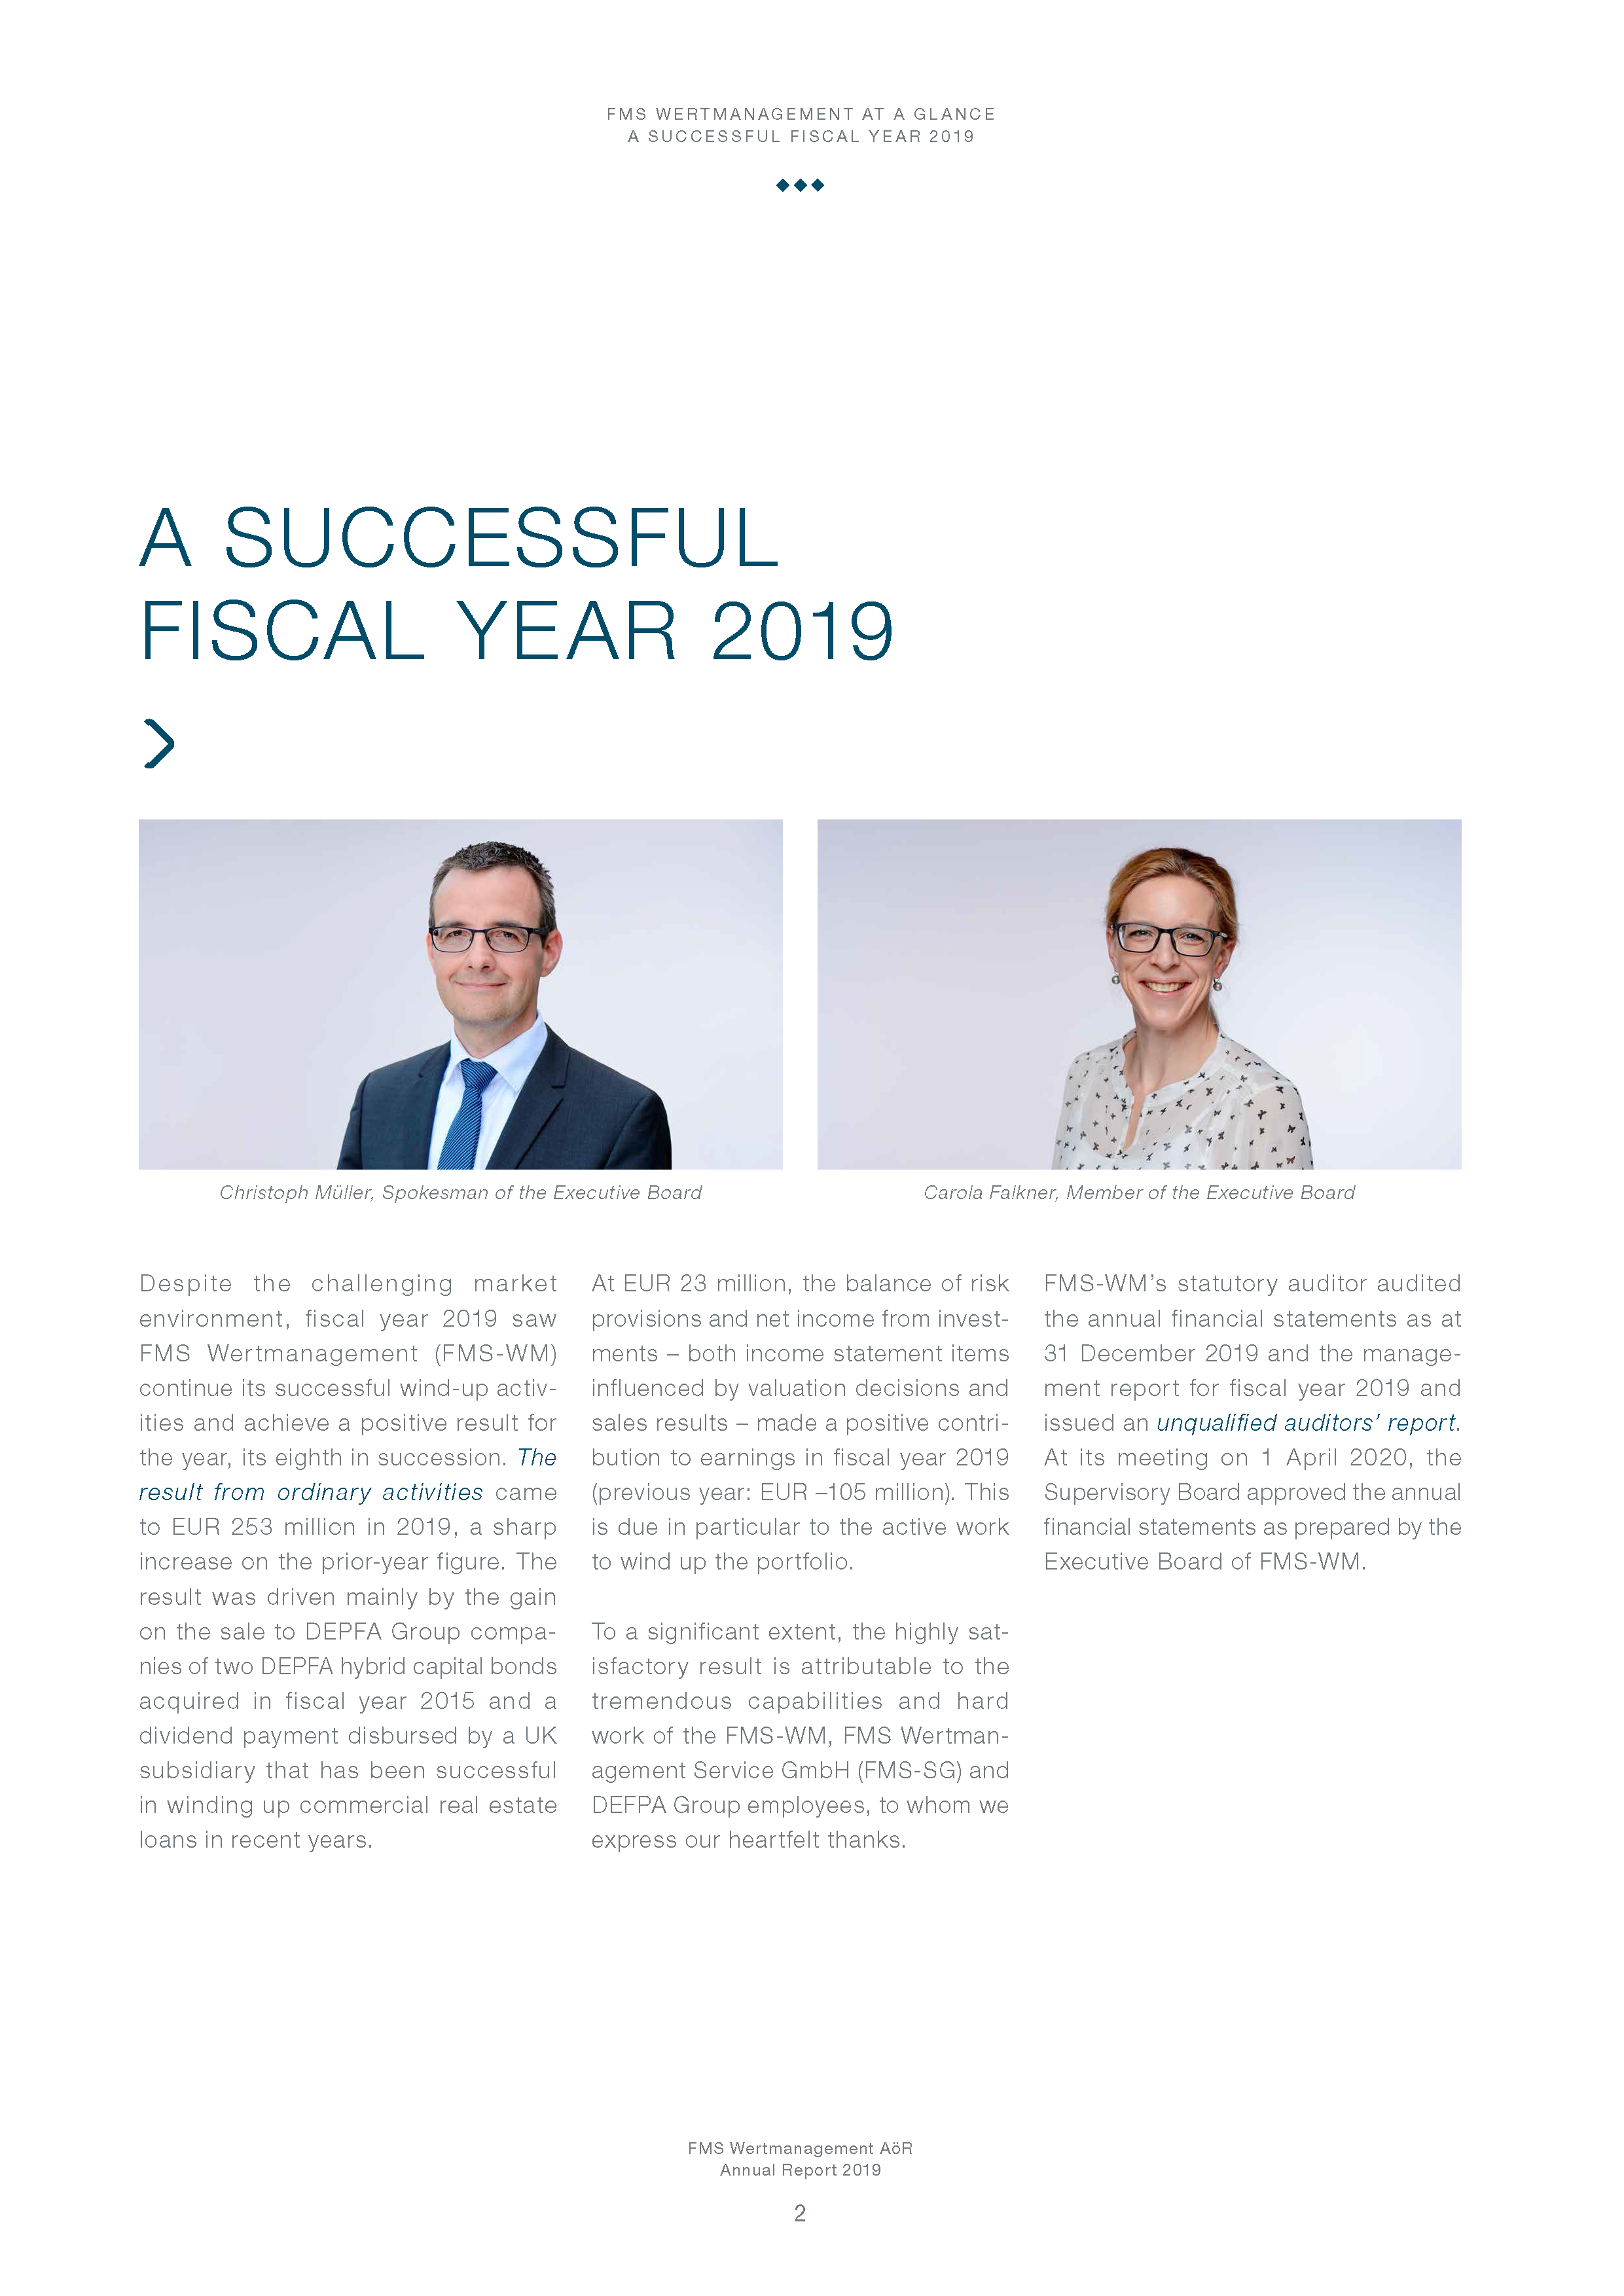 A successful fiscal year 2019 preview